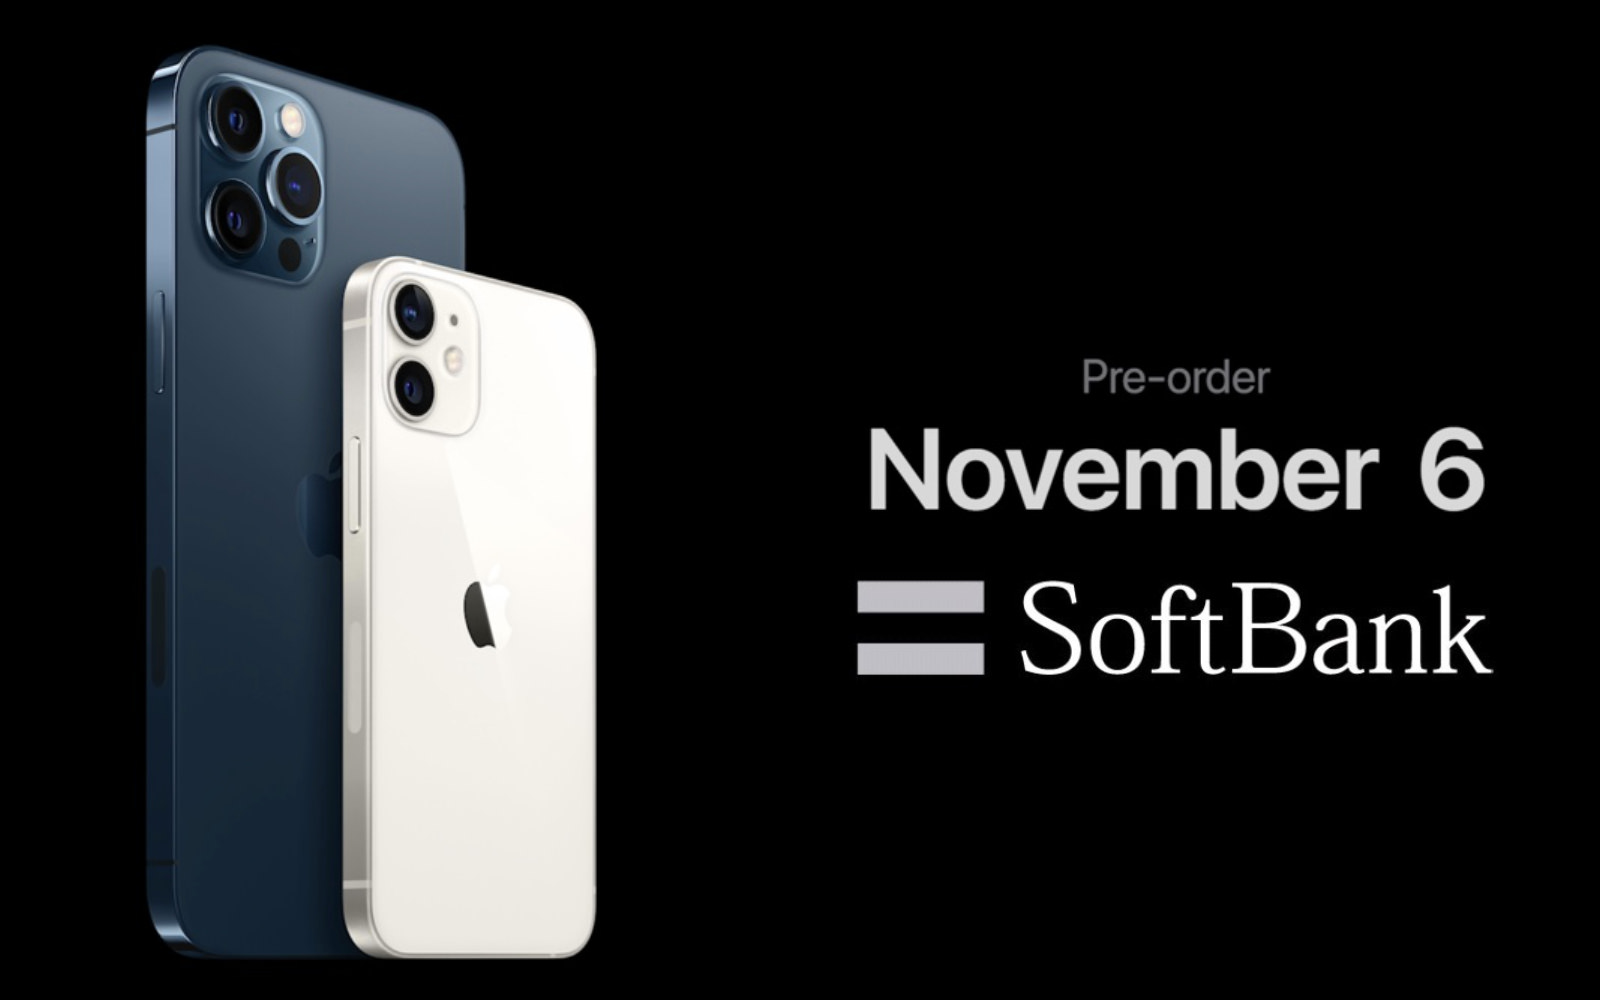 Softbank Preorder iphone12mini promax nov6